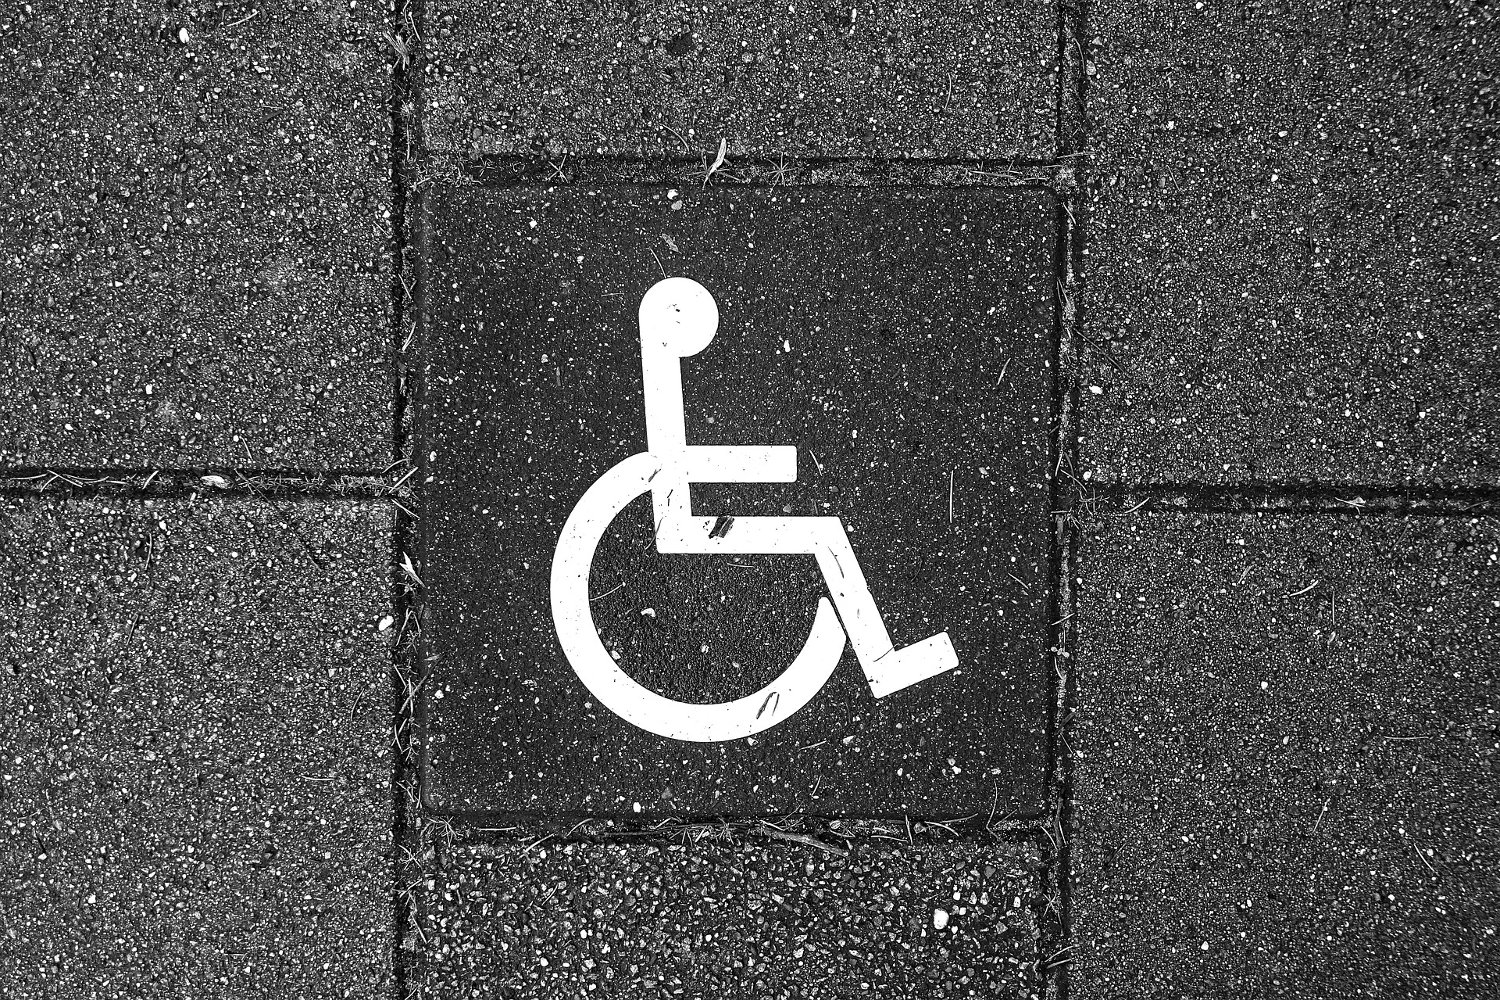 The pictograph of a person in a wheelchair on the pavement of a packing lot.